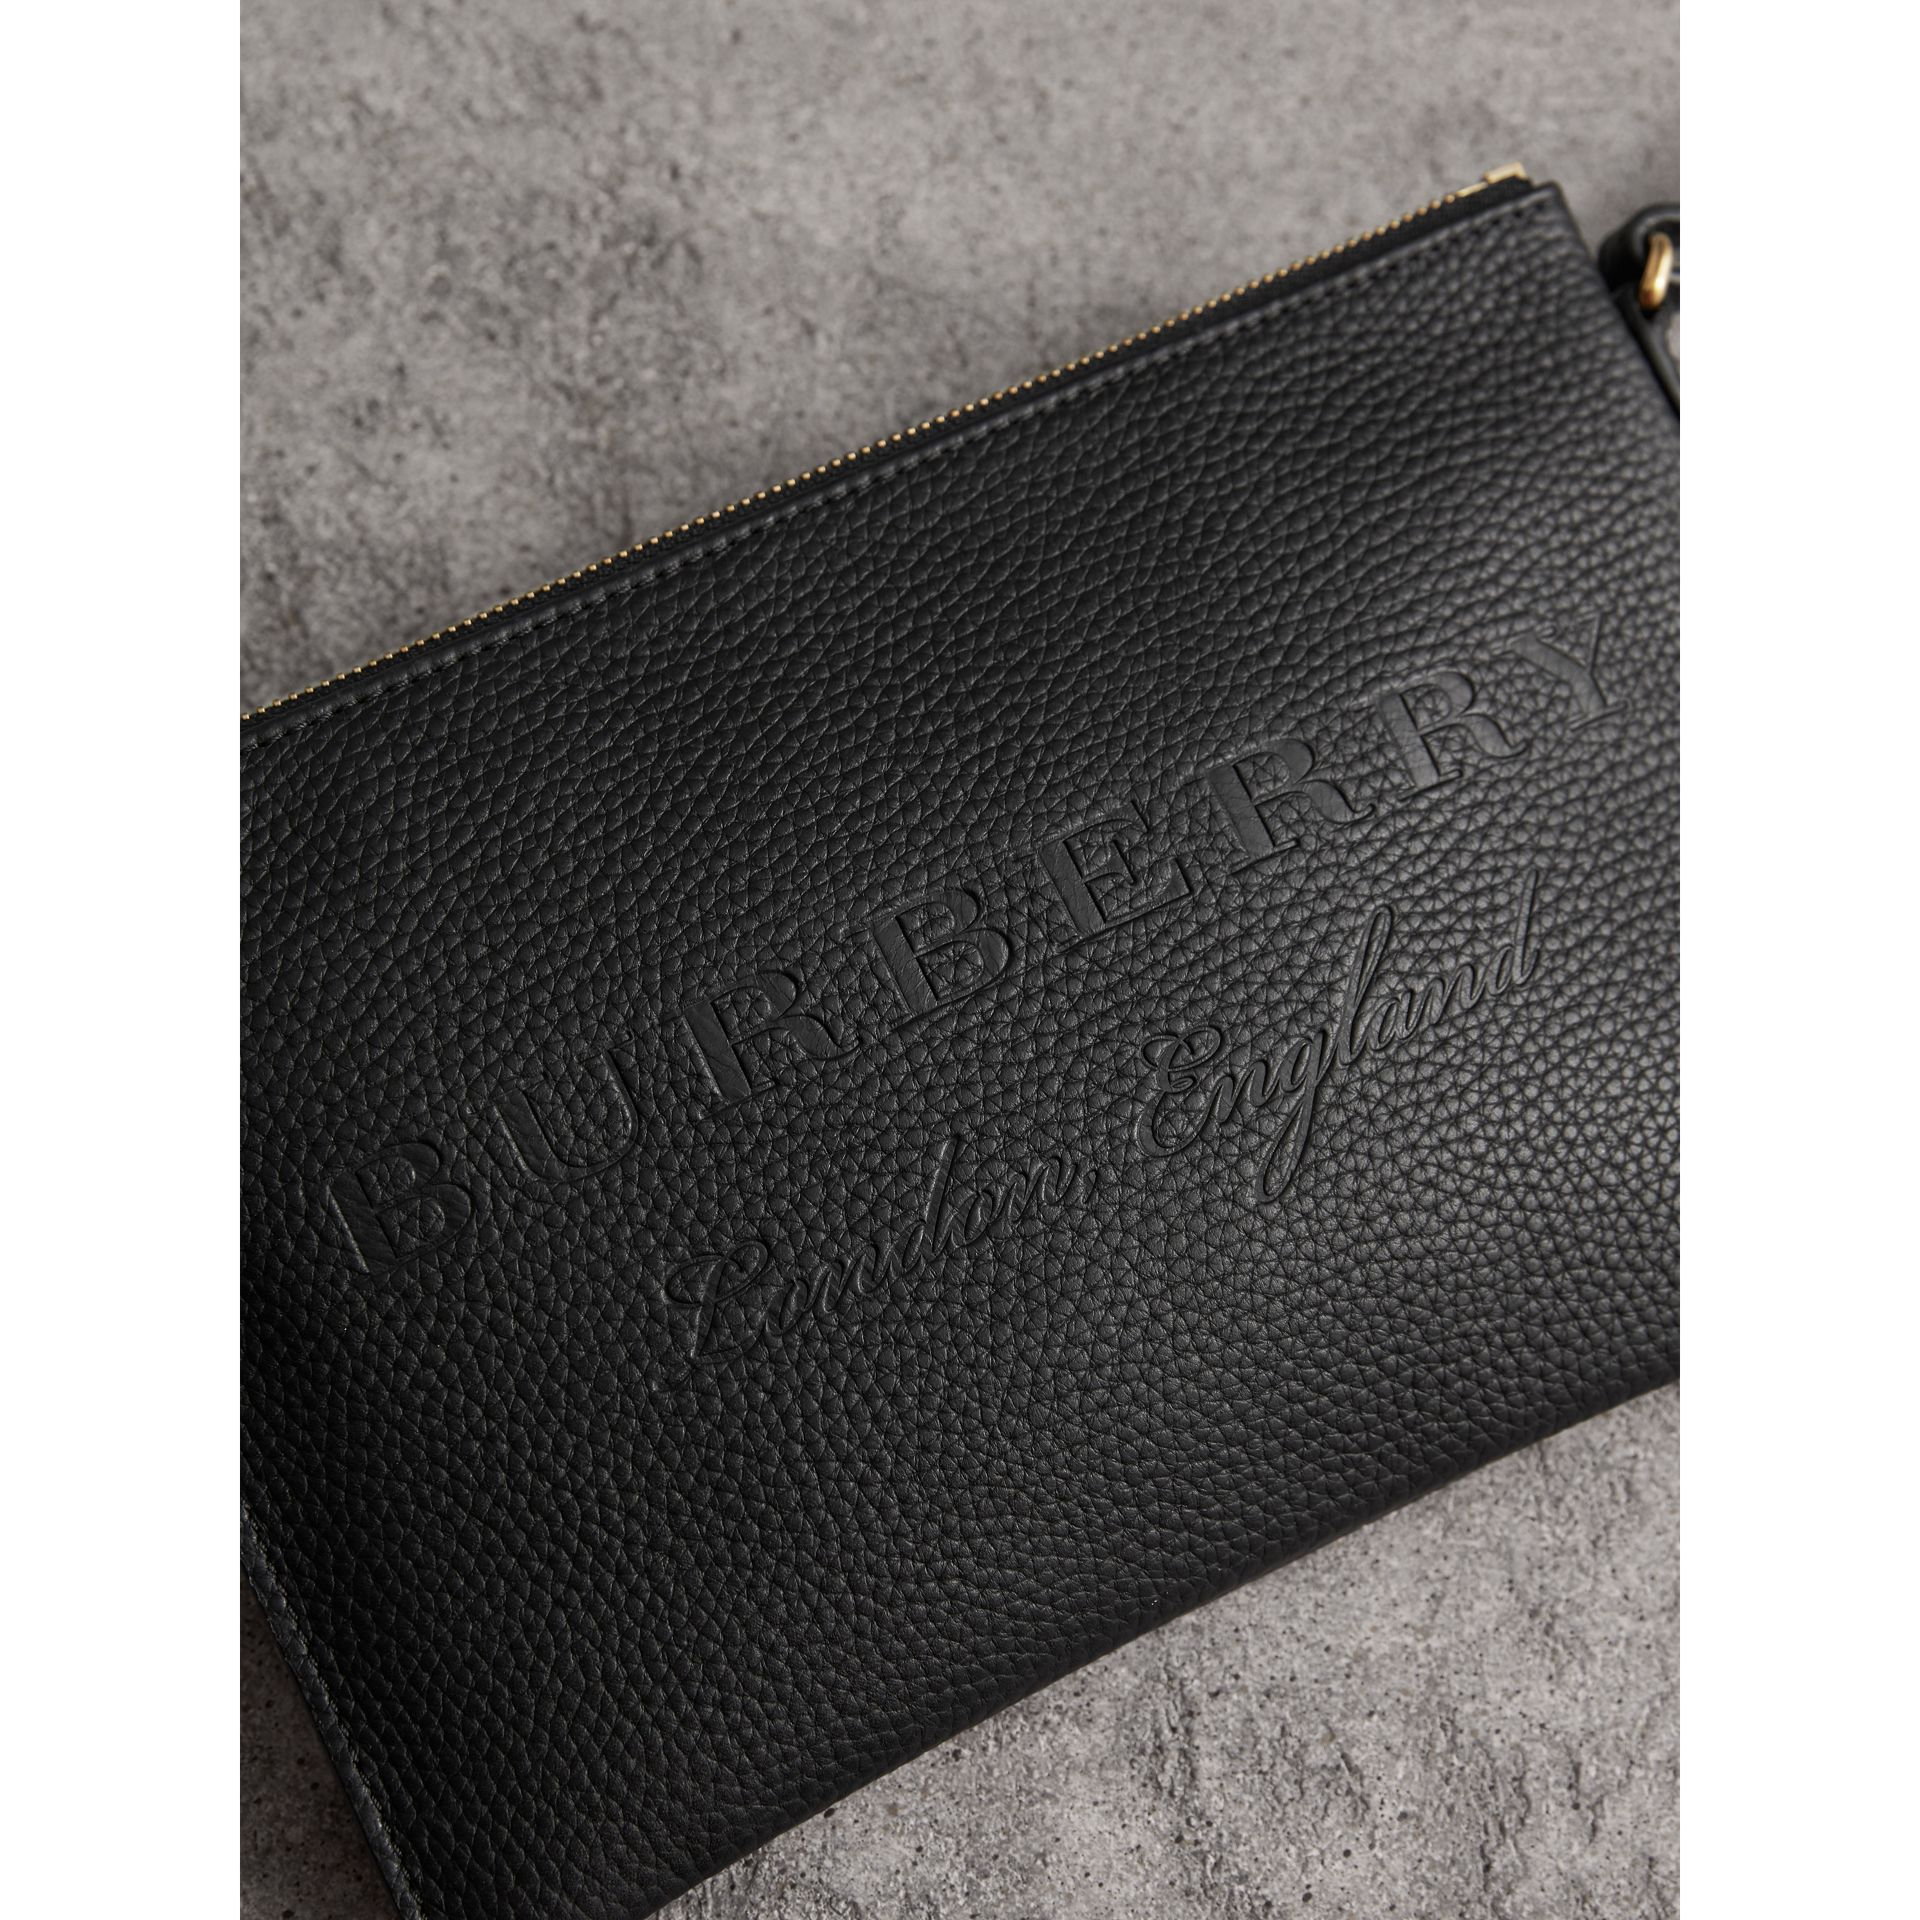 Embossed Leather Clutch Bag in Black - Women | Burberry United Kingdom - gallery image 1